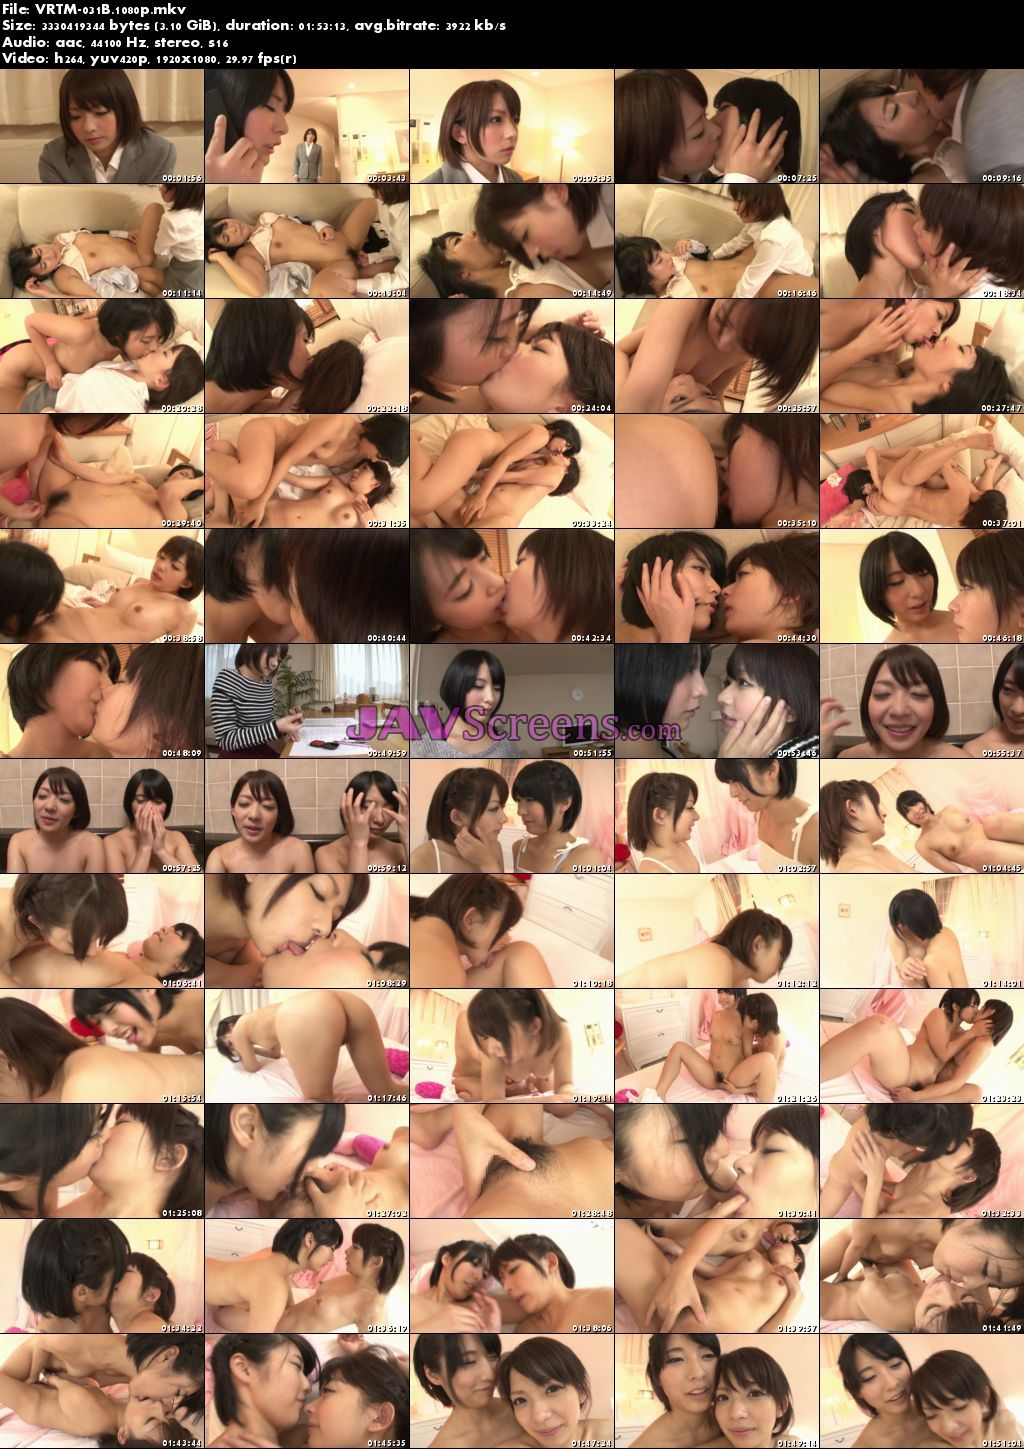 VRTM-031B.jpg - JAV Screenshot